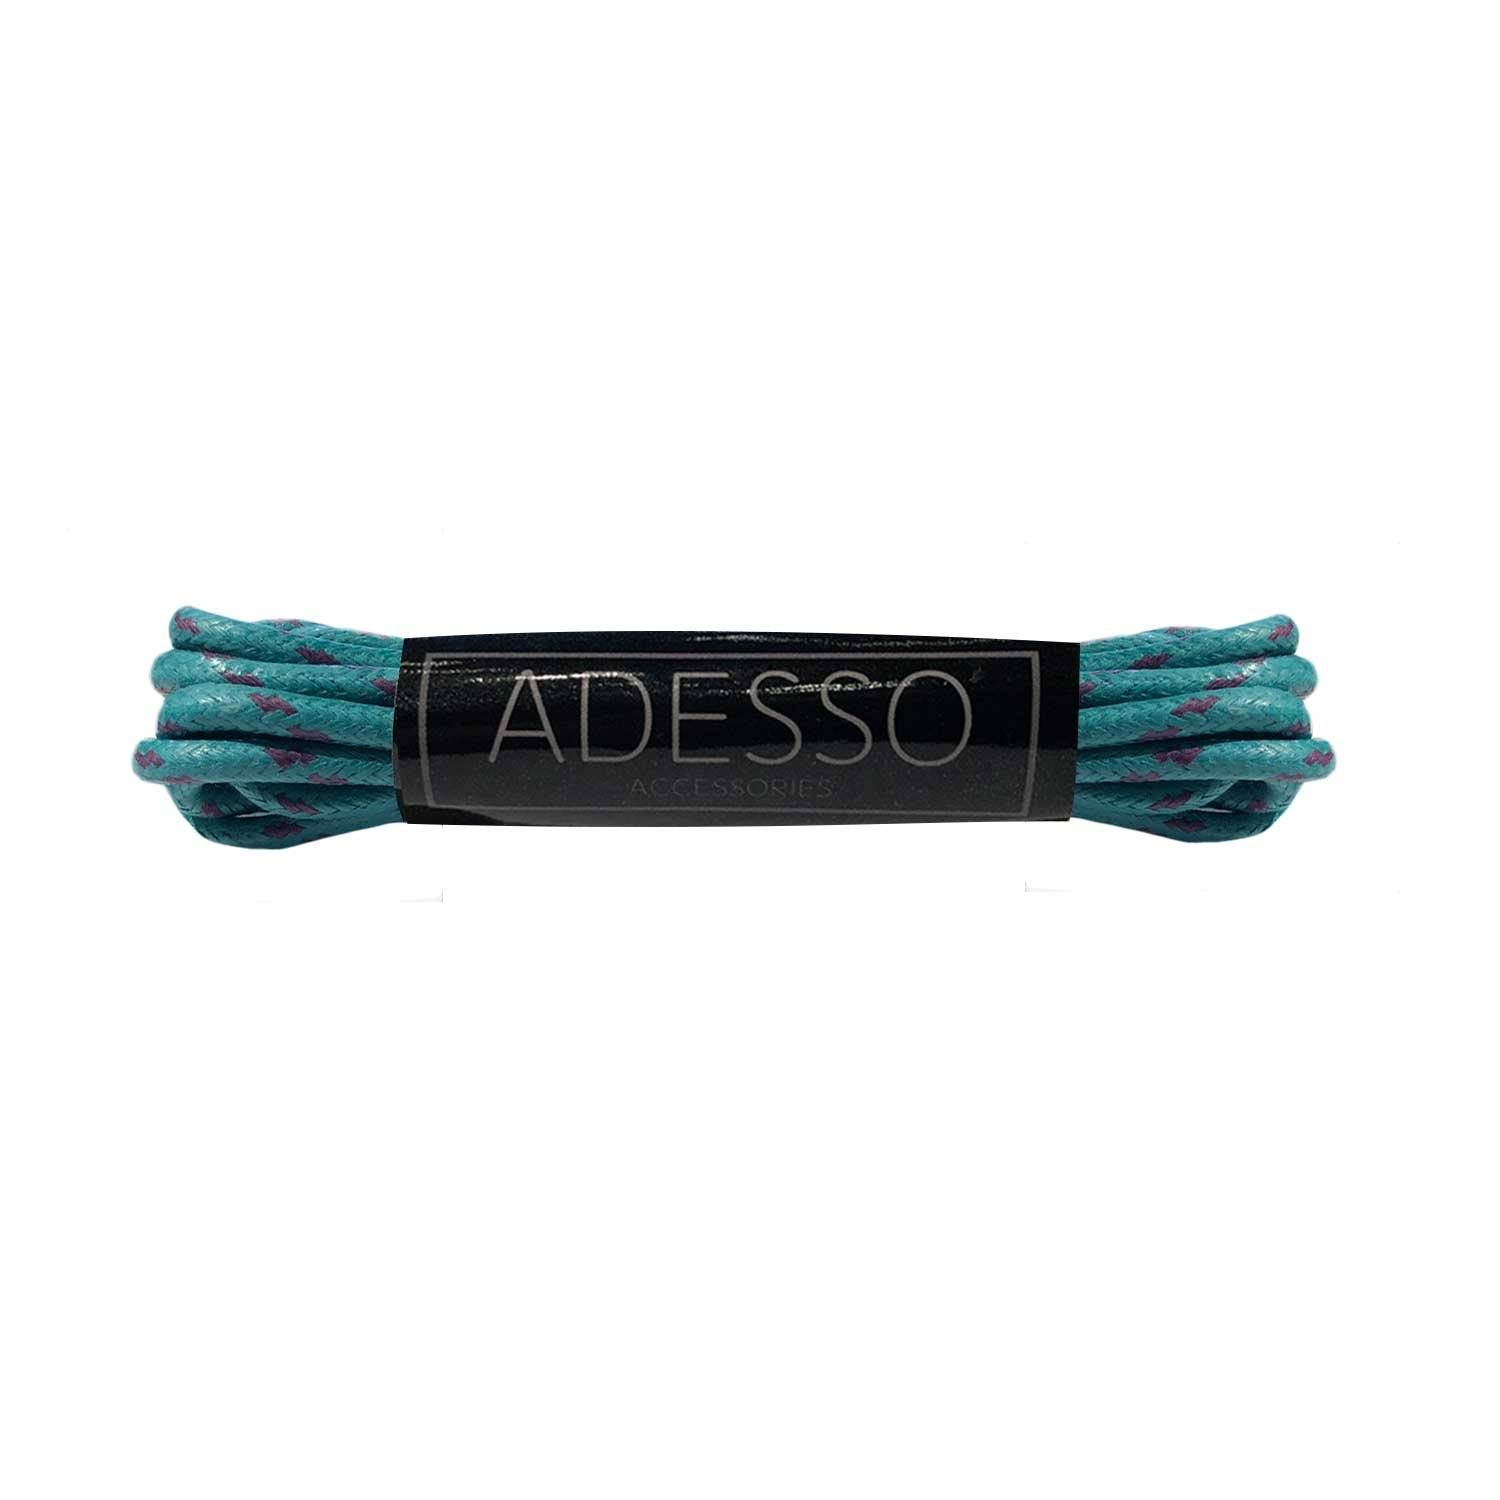 Camo Teal Waxed Cotton Laces